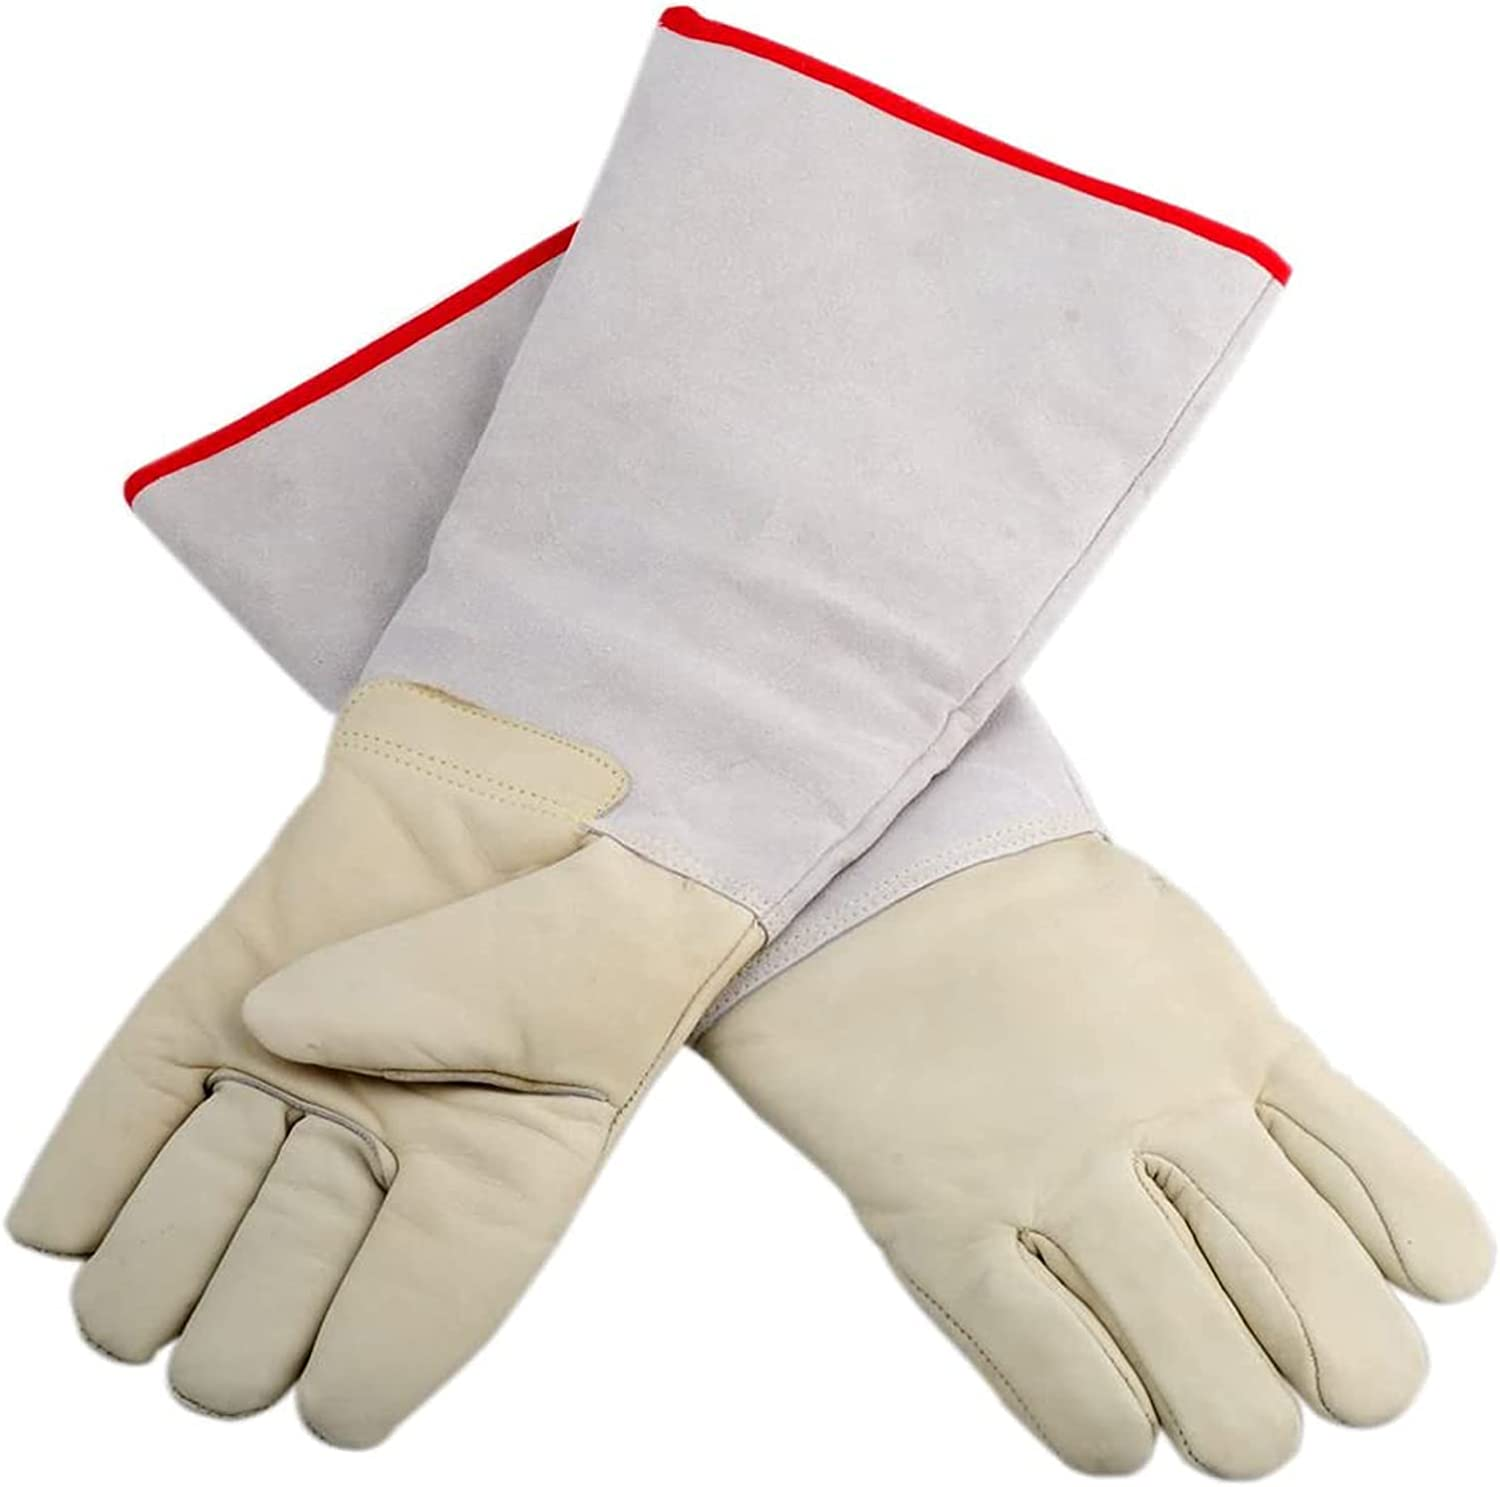 Ultra Long Cryogenic Gloves Milwaukee Industry No. 1 Mall Outdoor Snow Pr Waterproof Shoveling